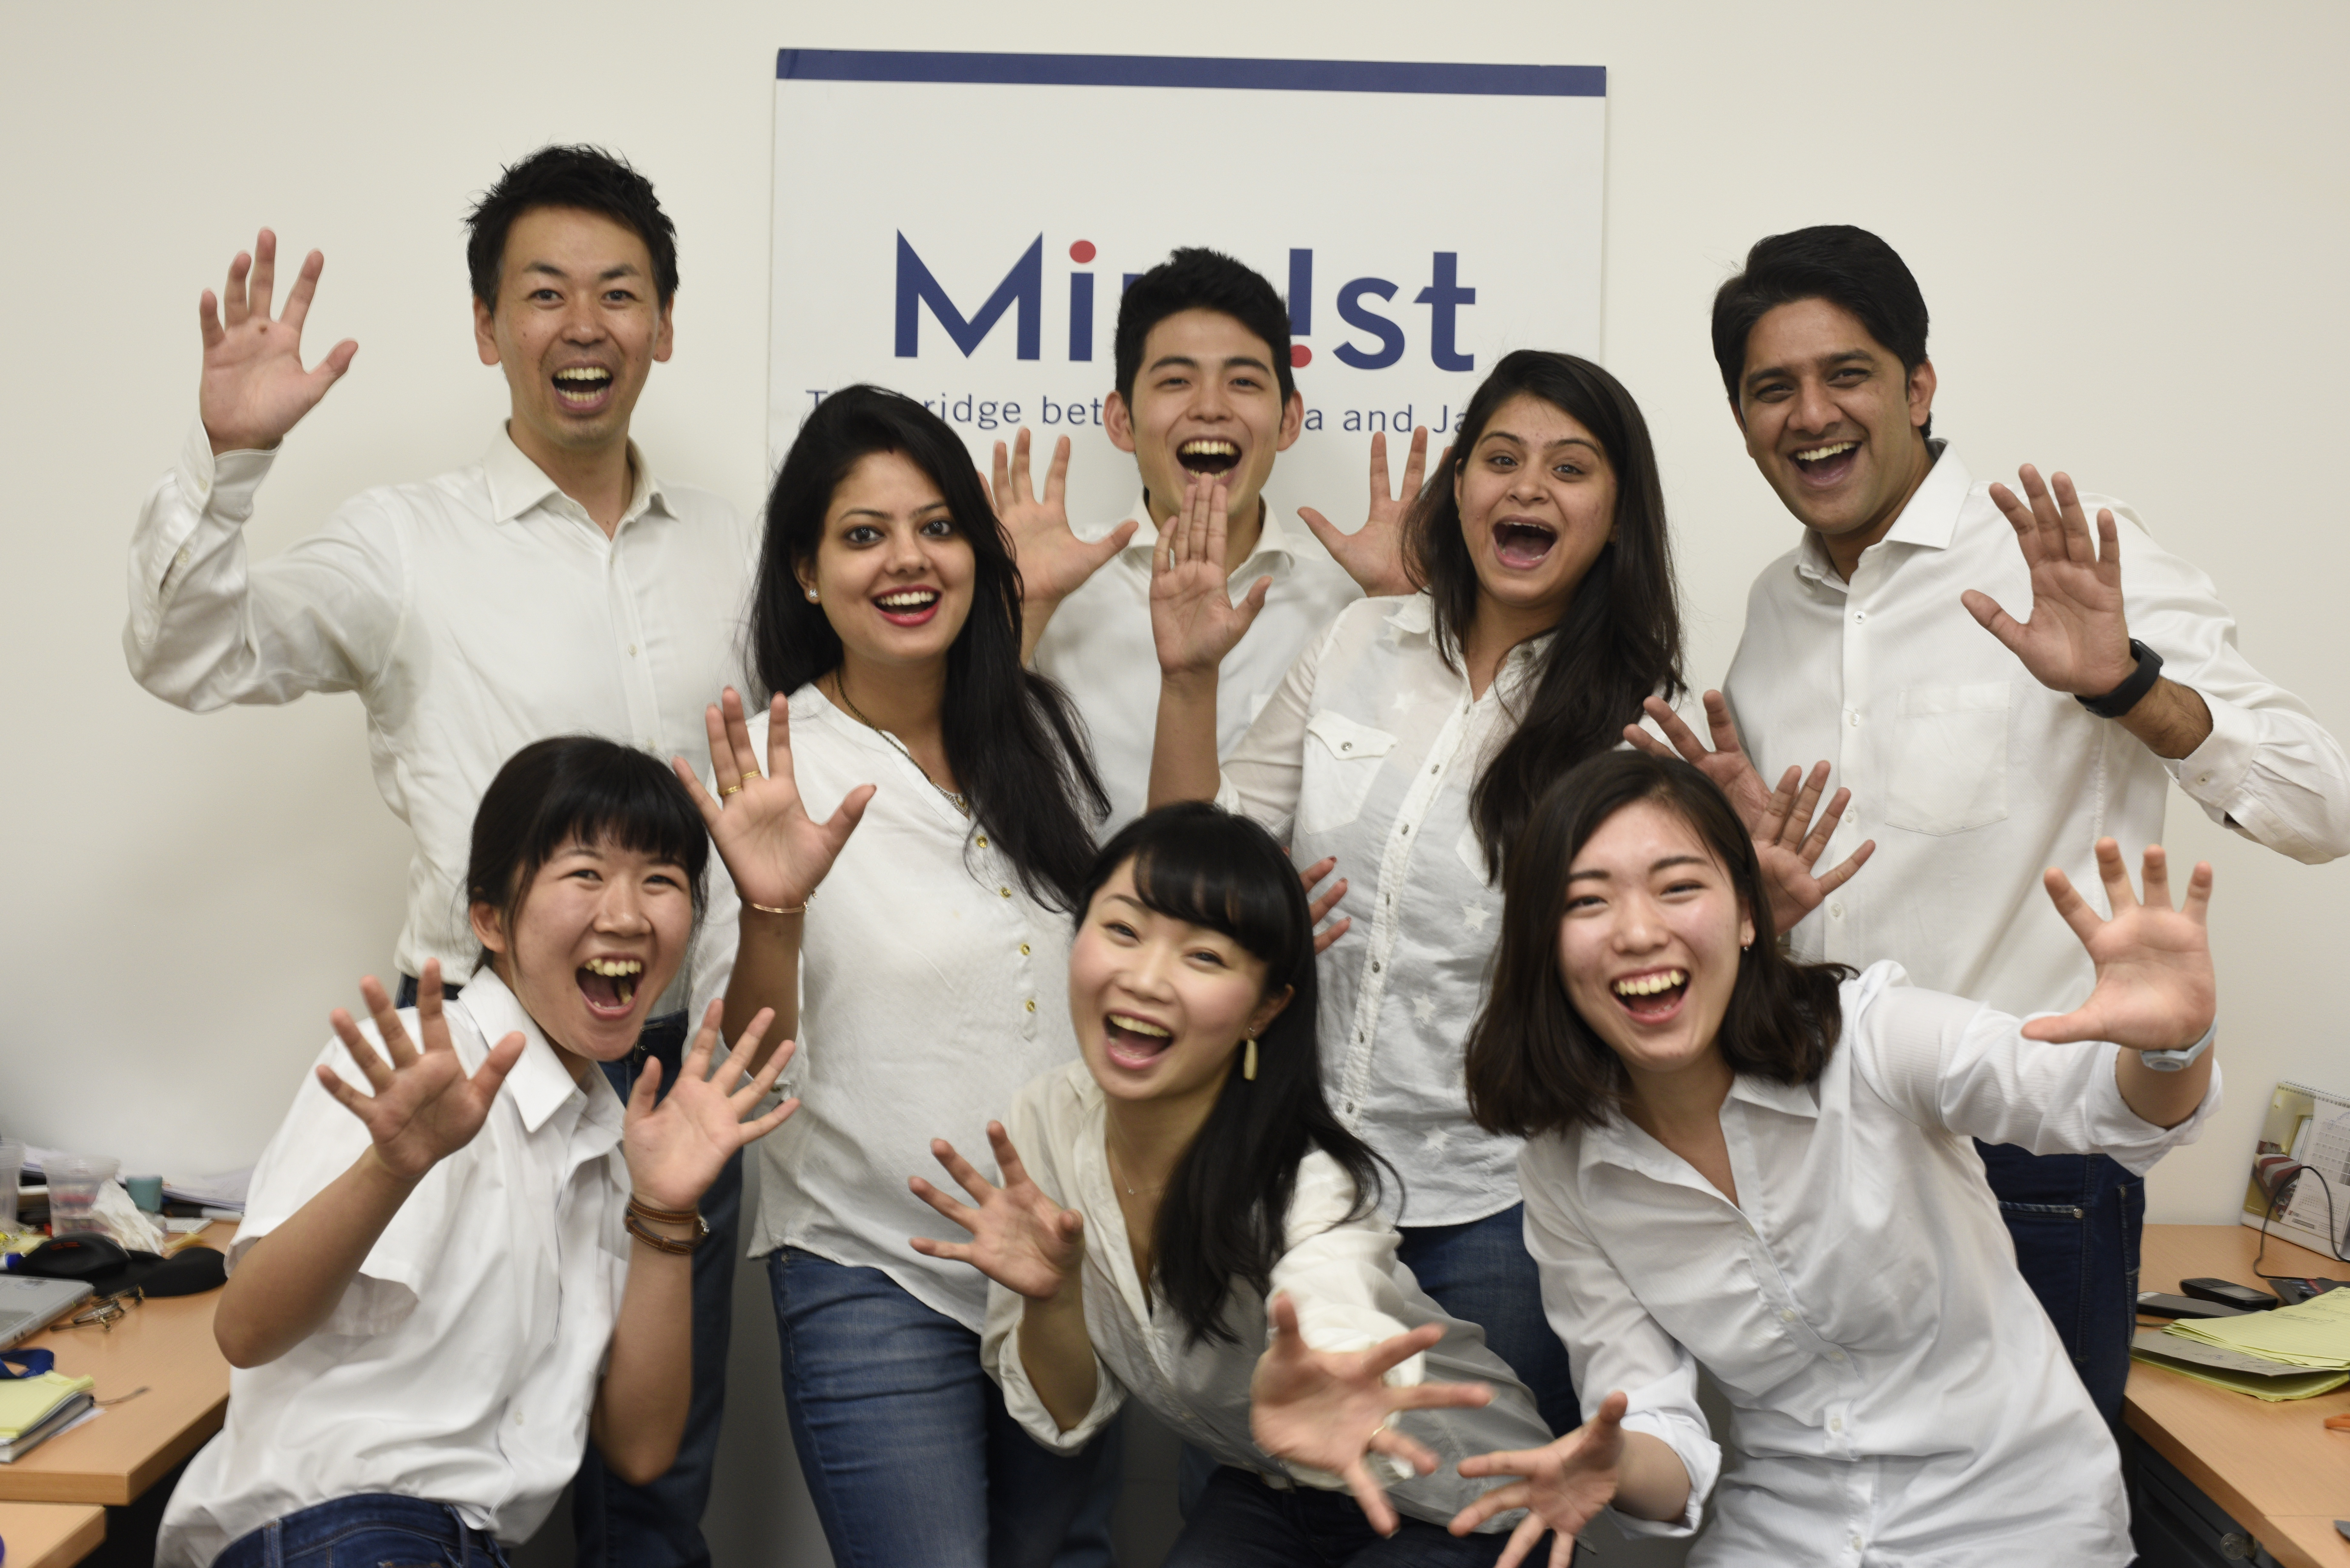 Miraist Private Limited